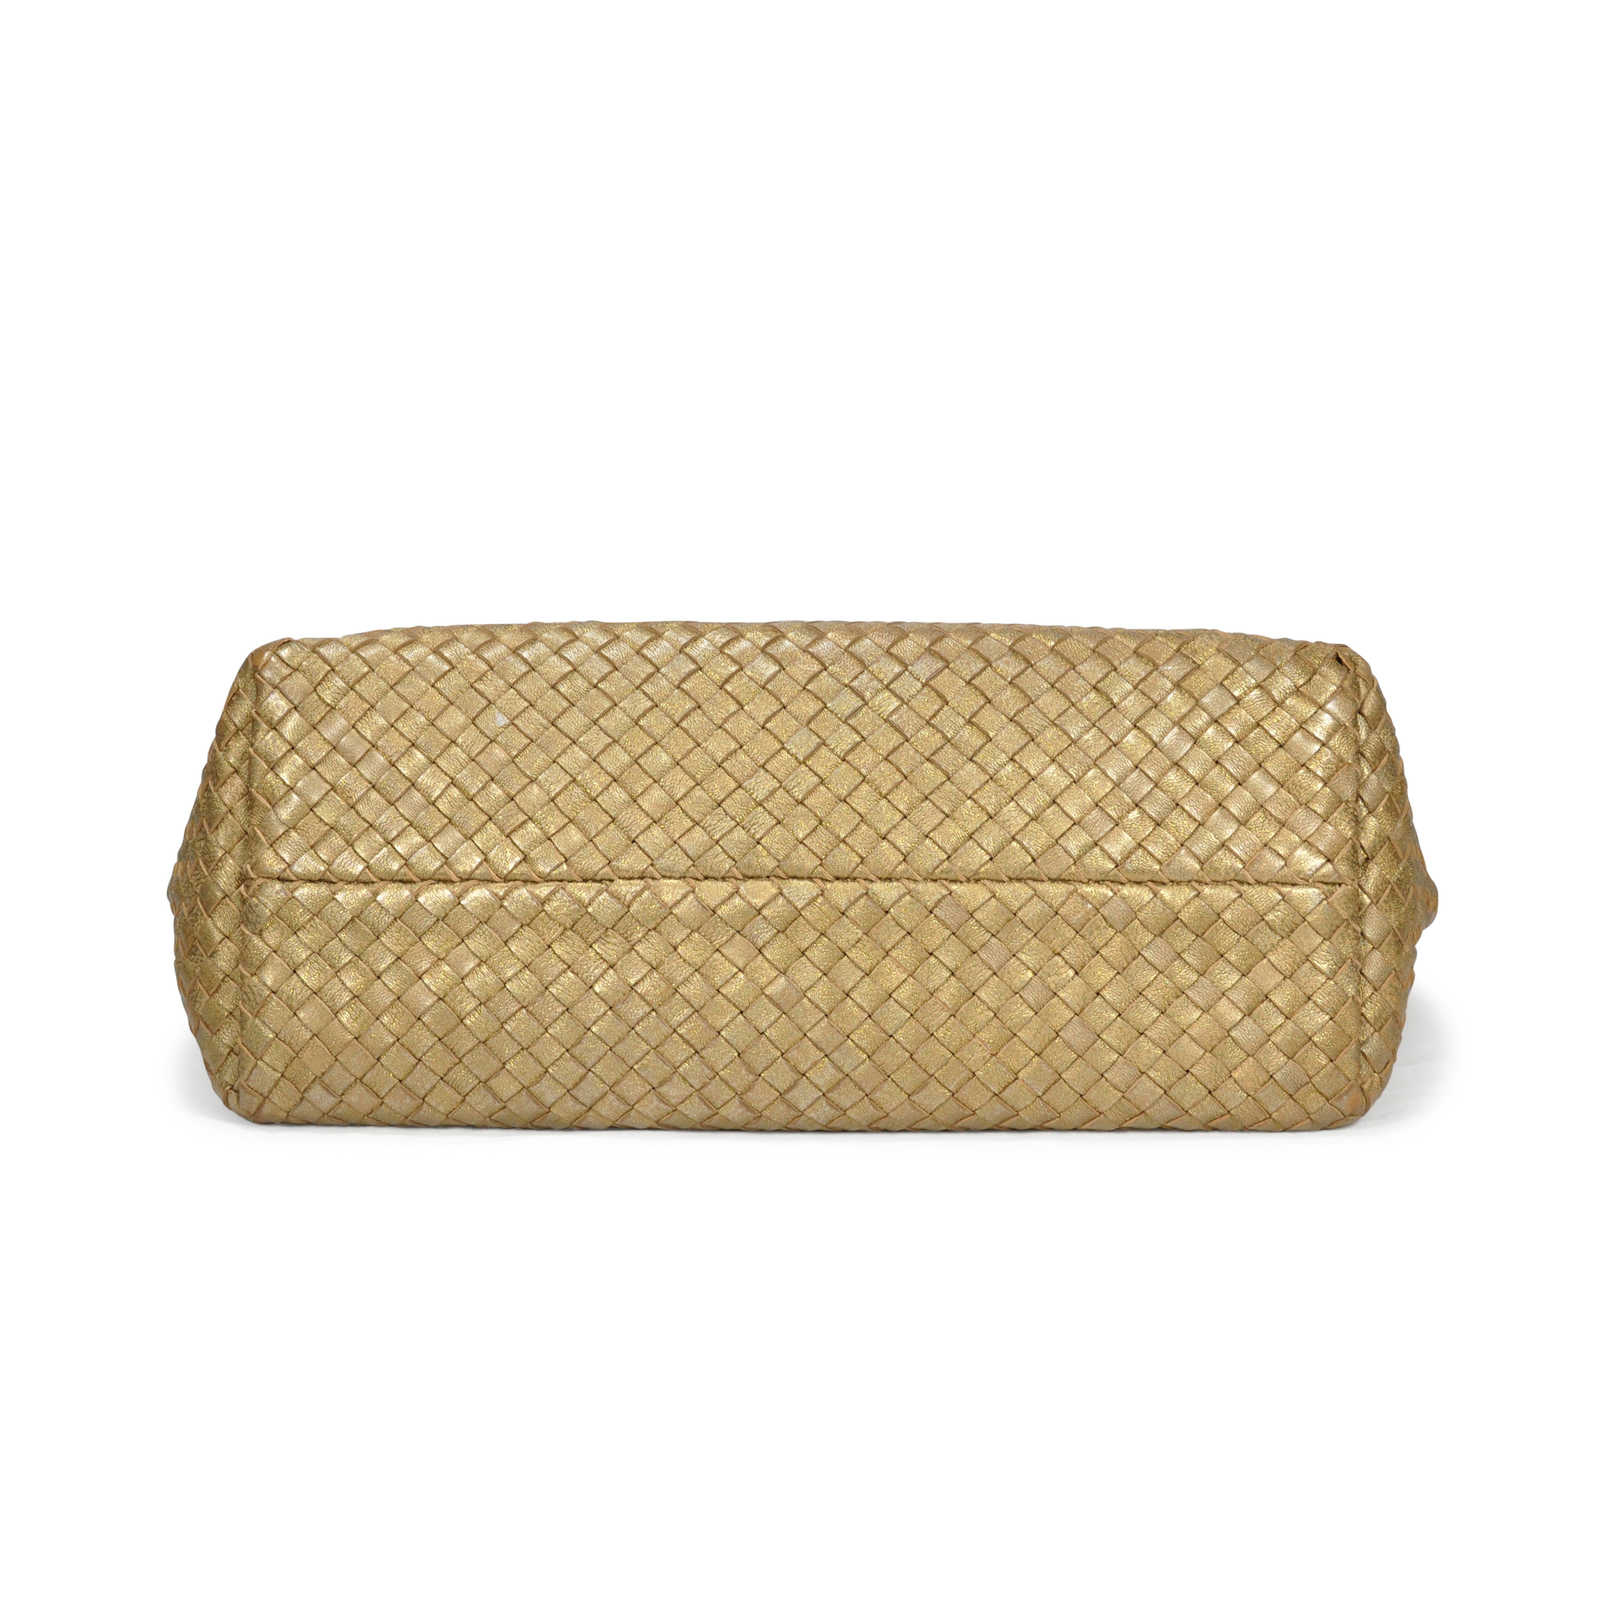 ... Authentic Second Hand Bottega Veneta Cabat Bag (PSS-246-00069) -  Thumbnail ... 143d1a90085fd